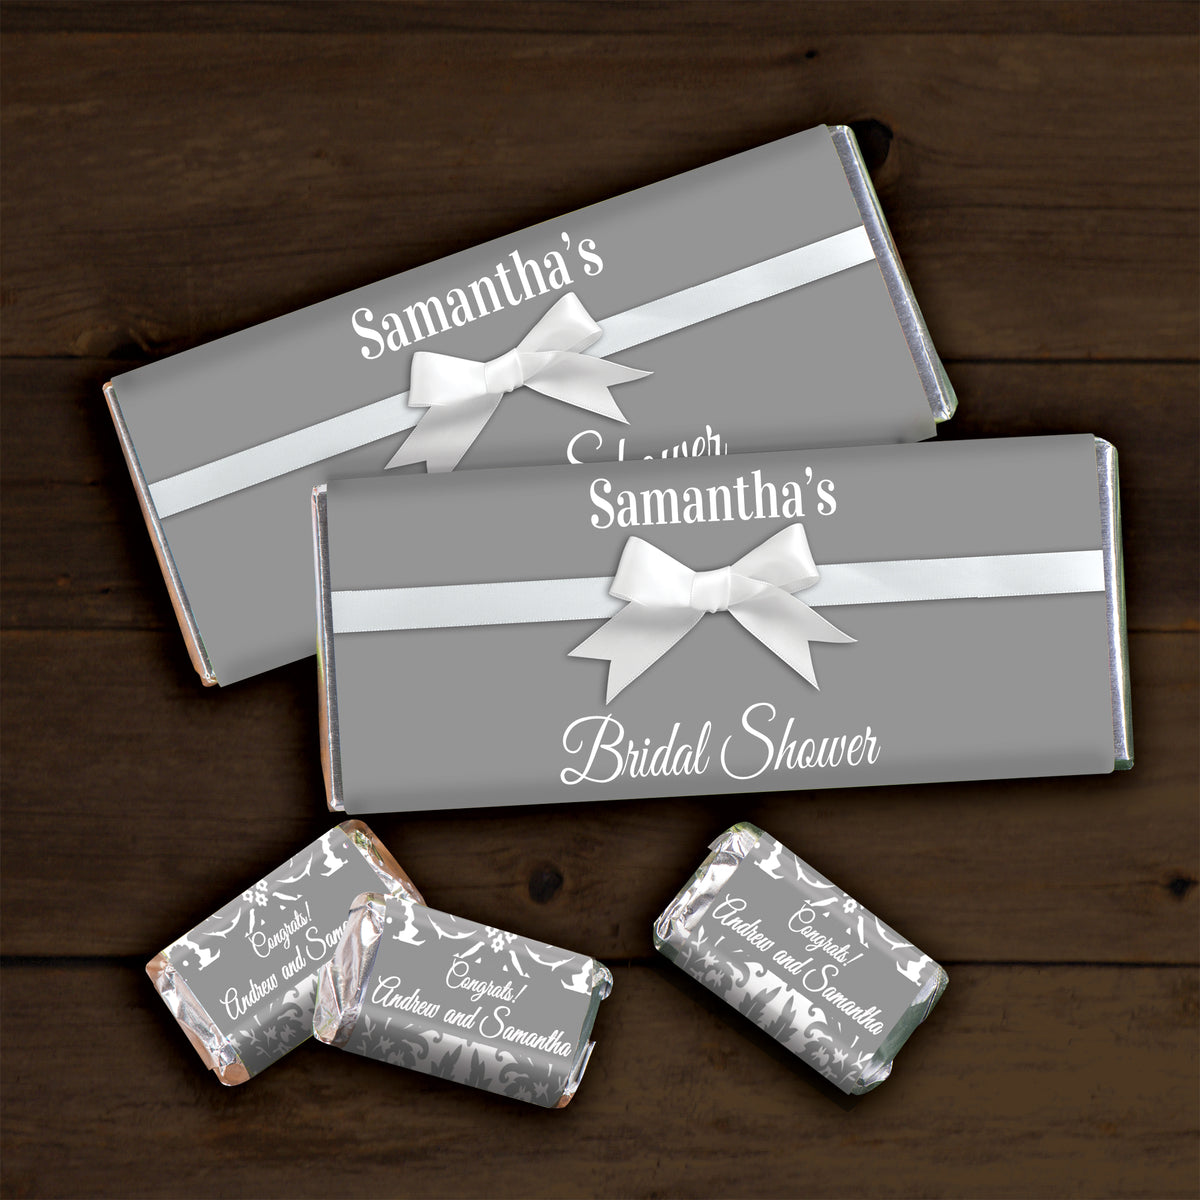 Hershey's Chocolate Prom 2021 Personalized Candy Bars